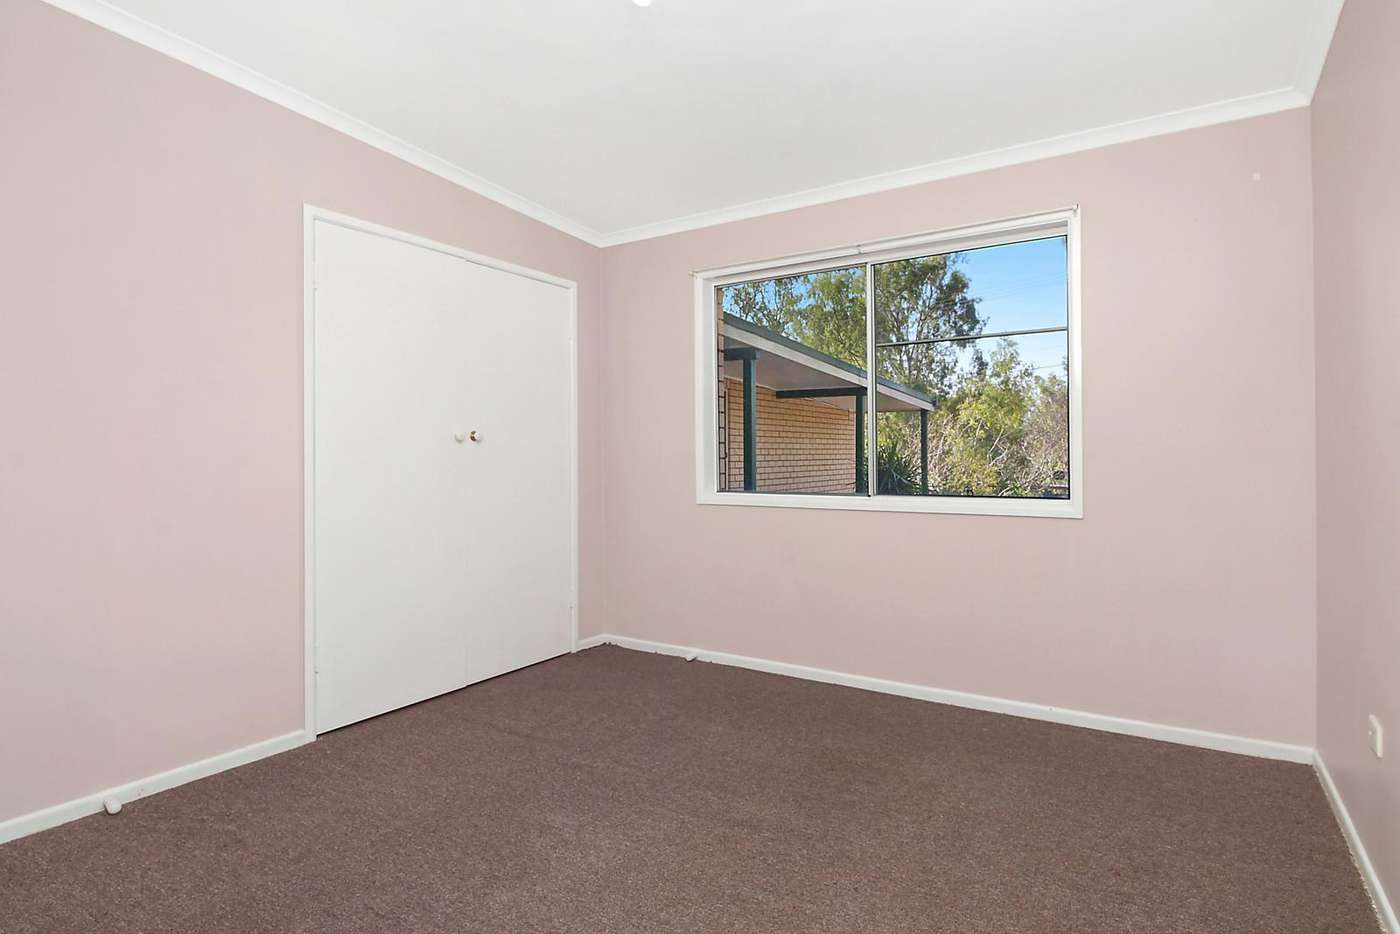 Sixth view of Homely house listing, 2 Beryl Court, Bellbird Park QLD 4300